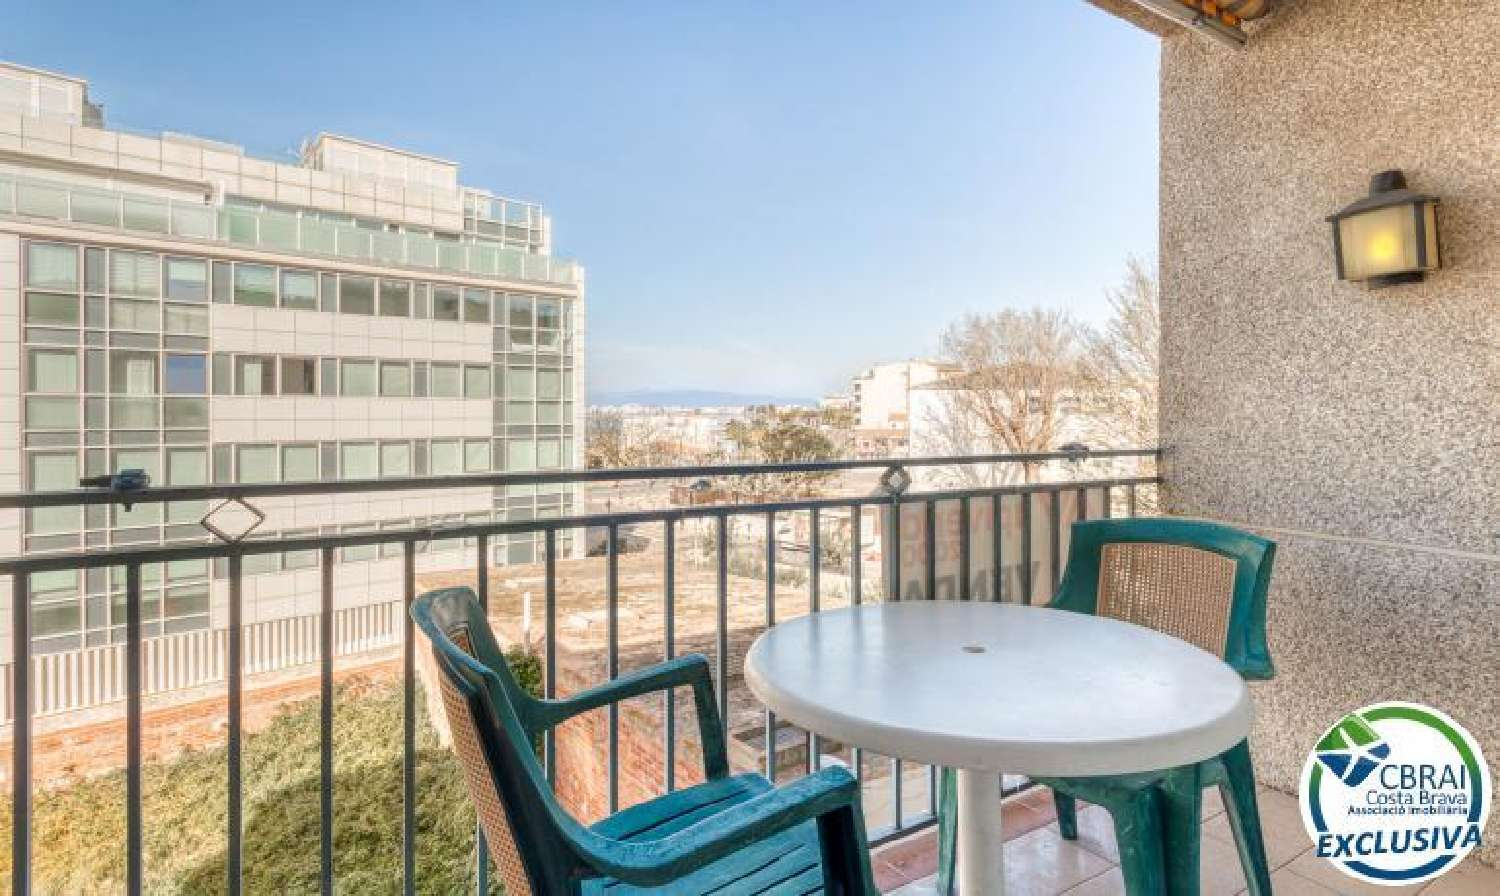 roses girona appartement foto 4645936